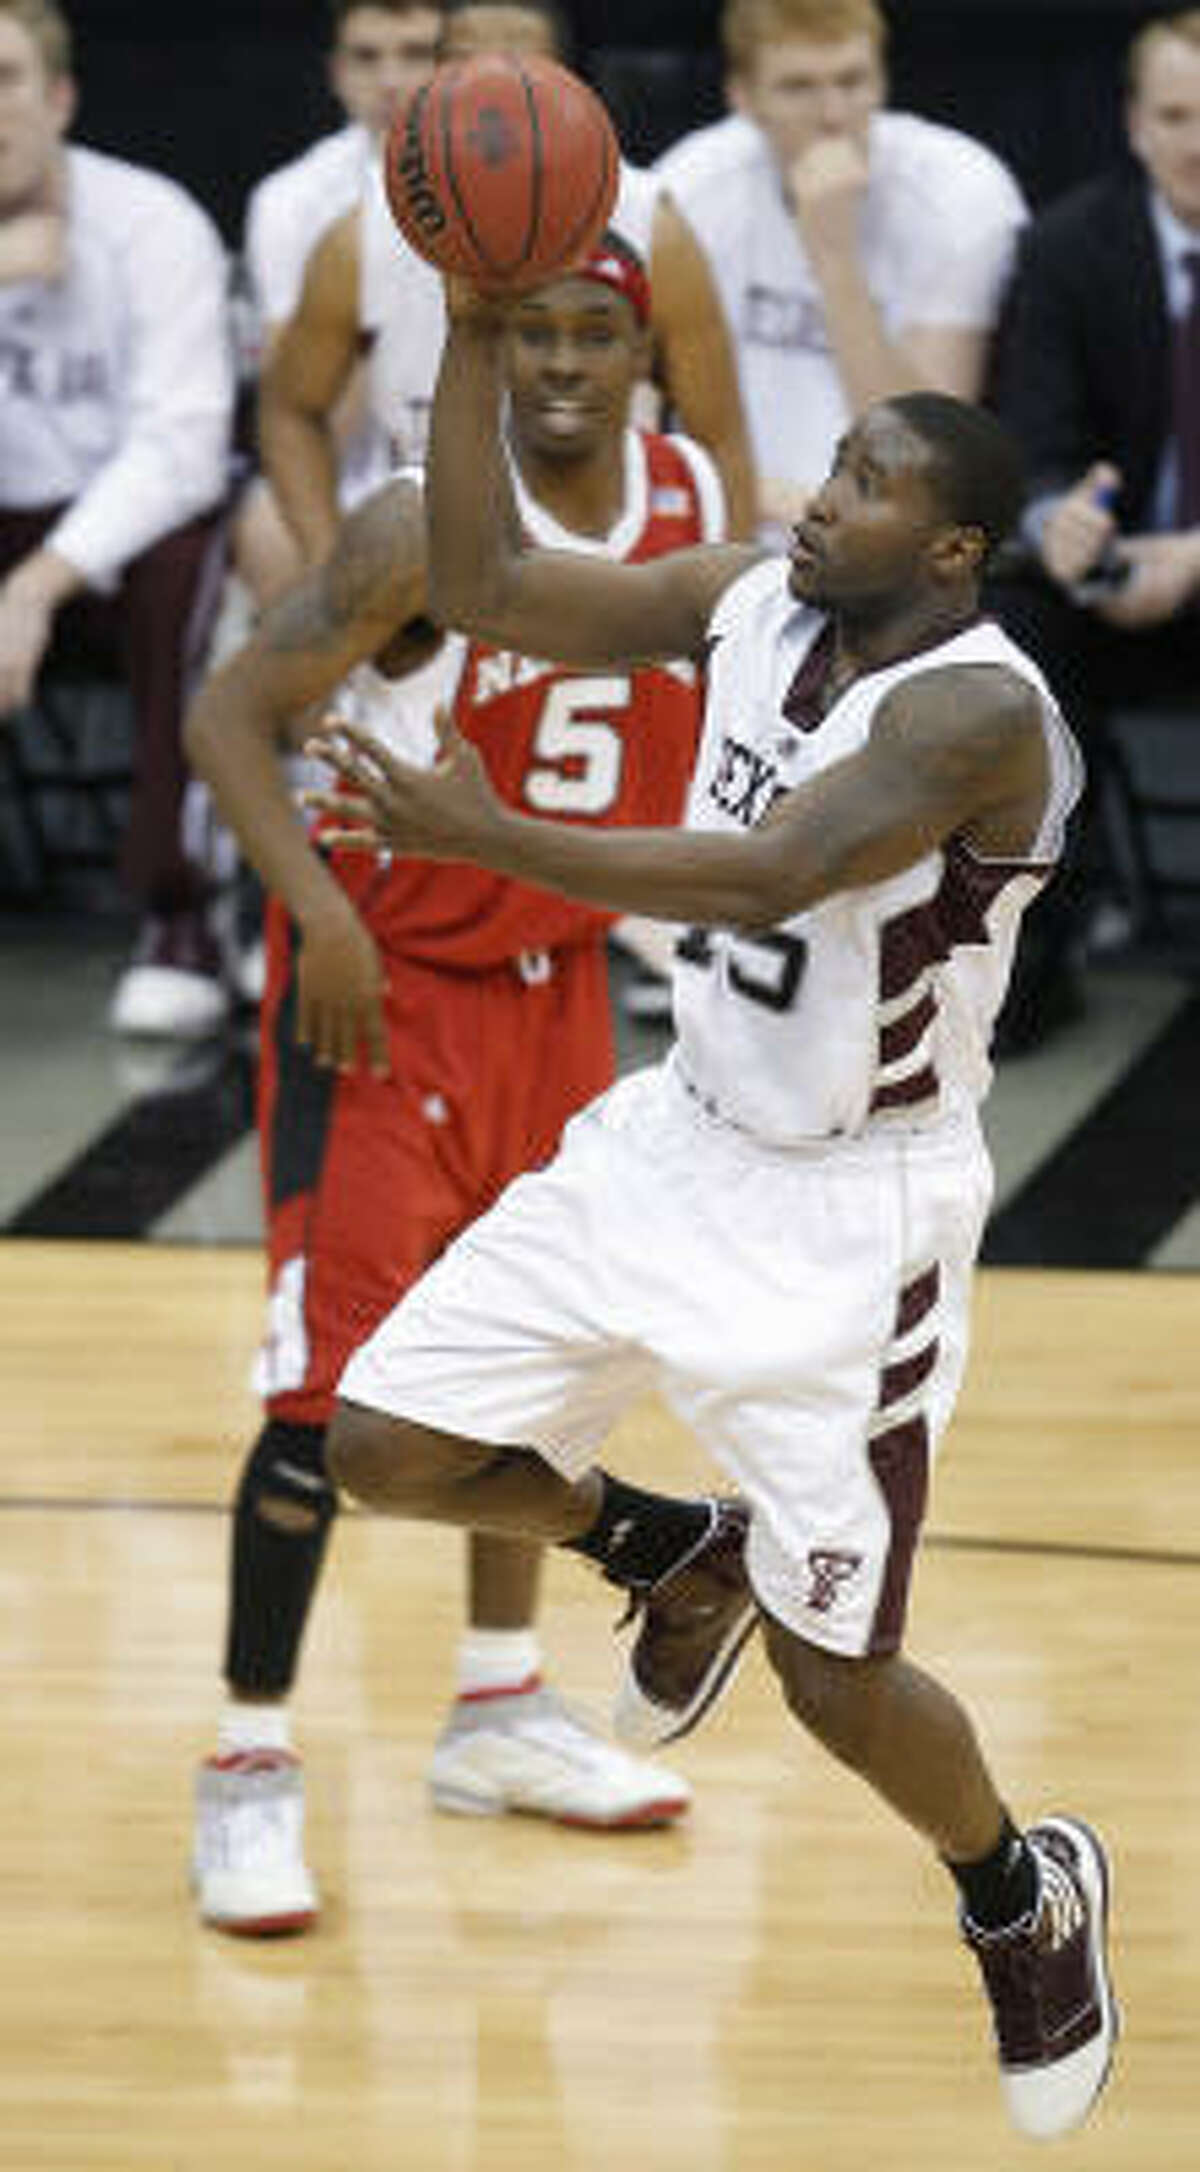 Texas A&M guard Donald Sloan is the go-to player for the Aggies and usually guards the opponent's best perimeter player — a rare all-around combination.